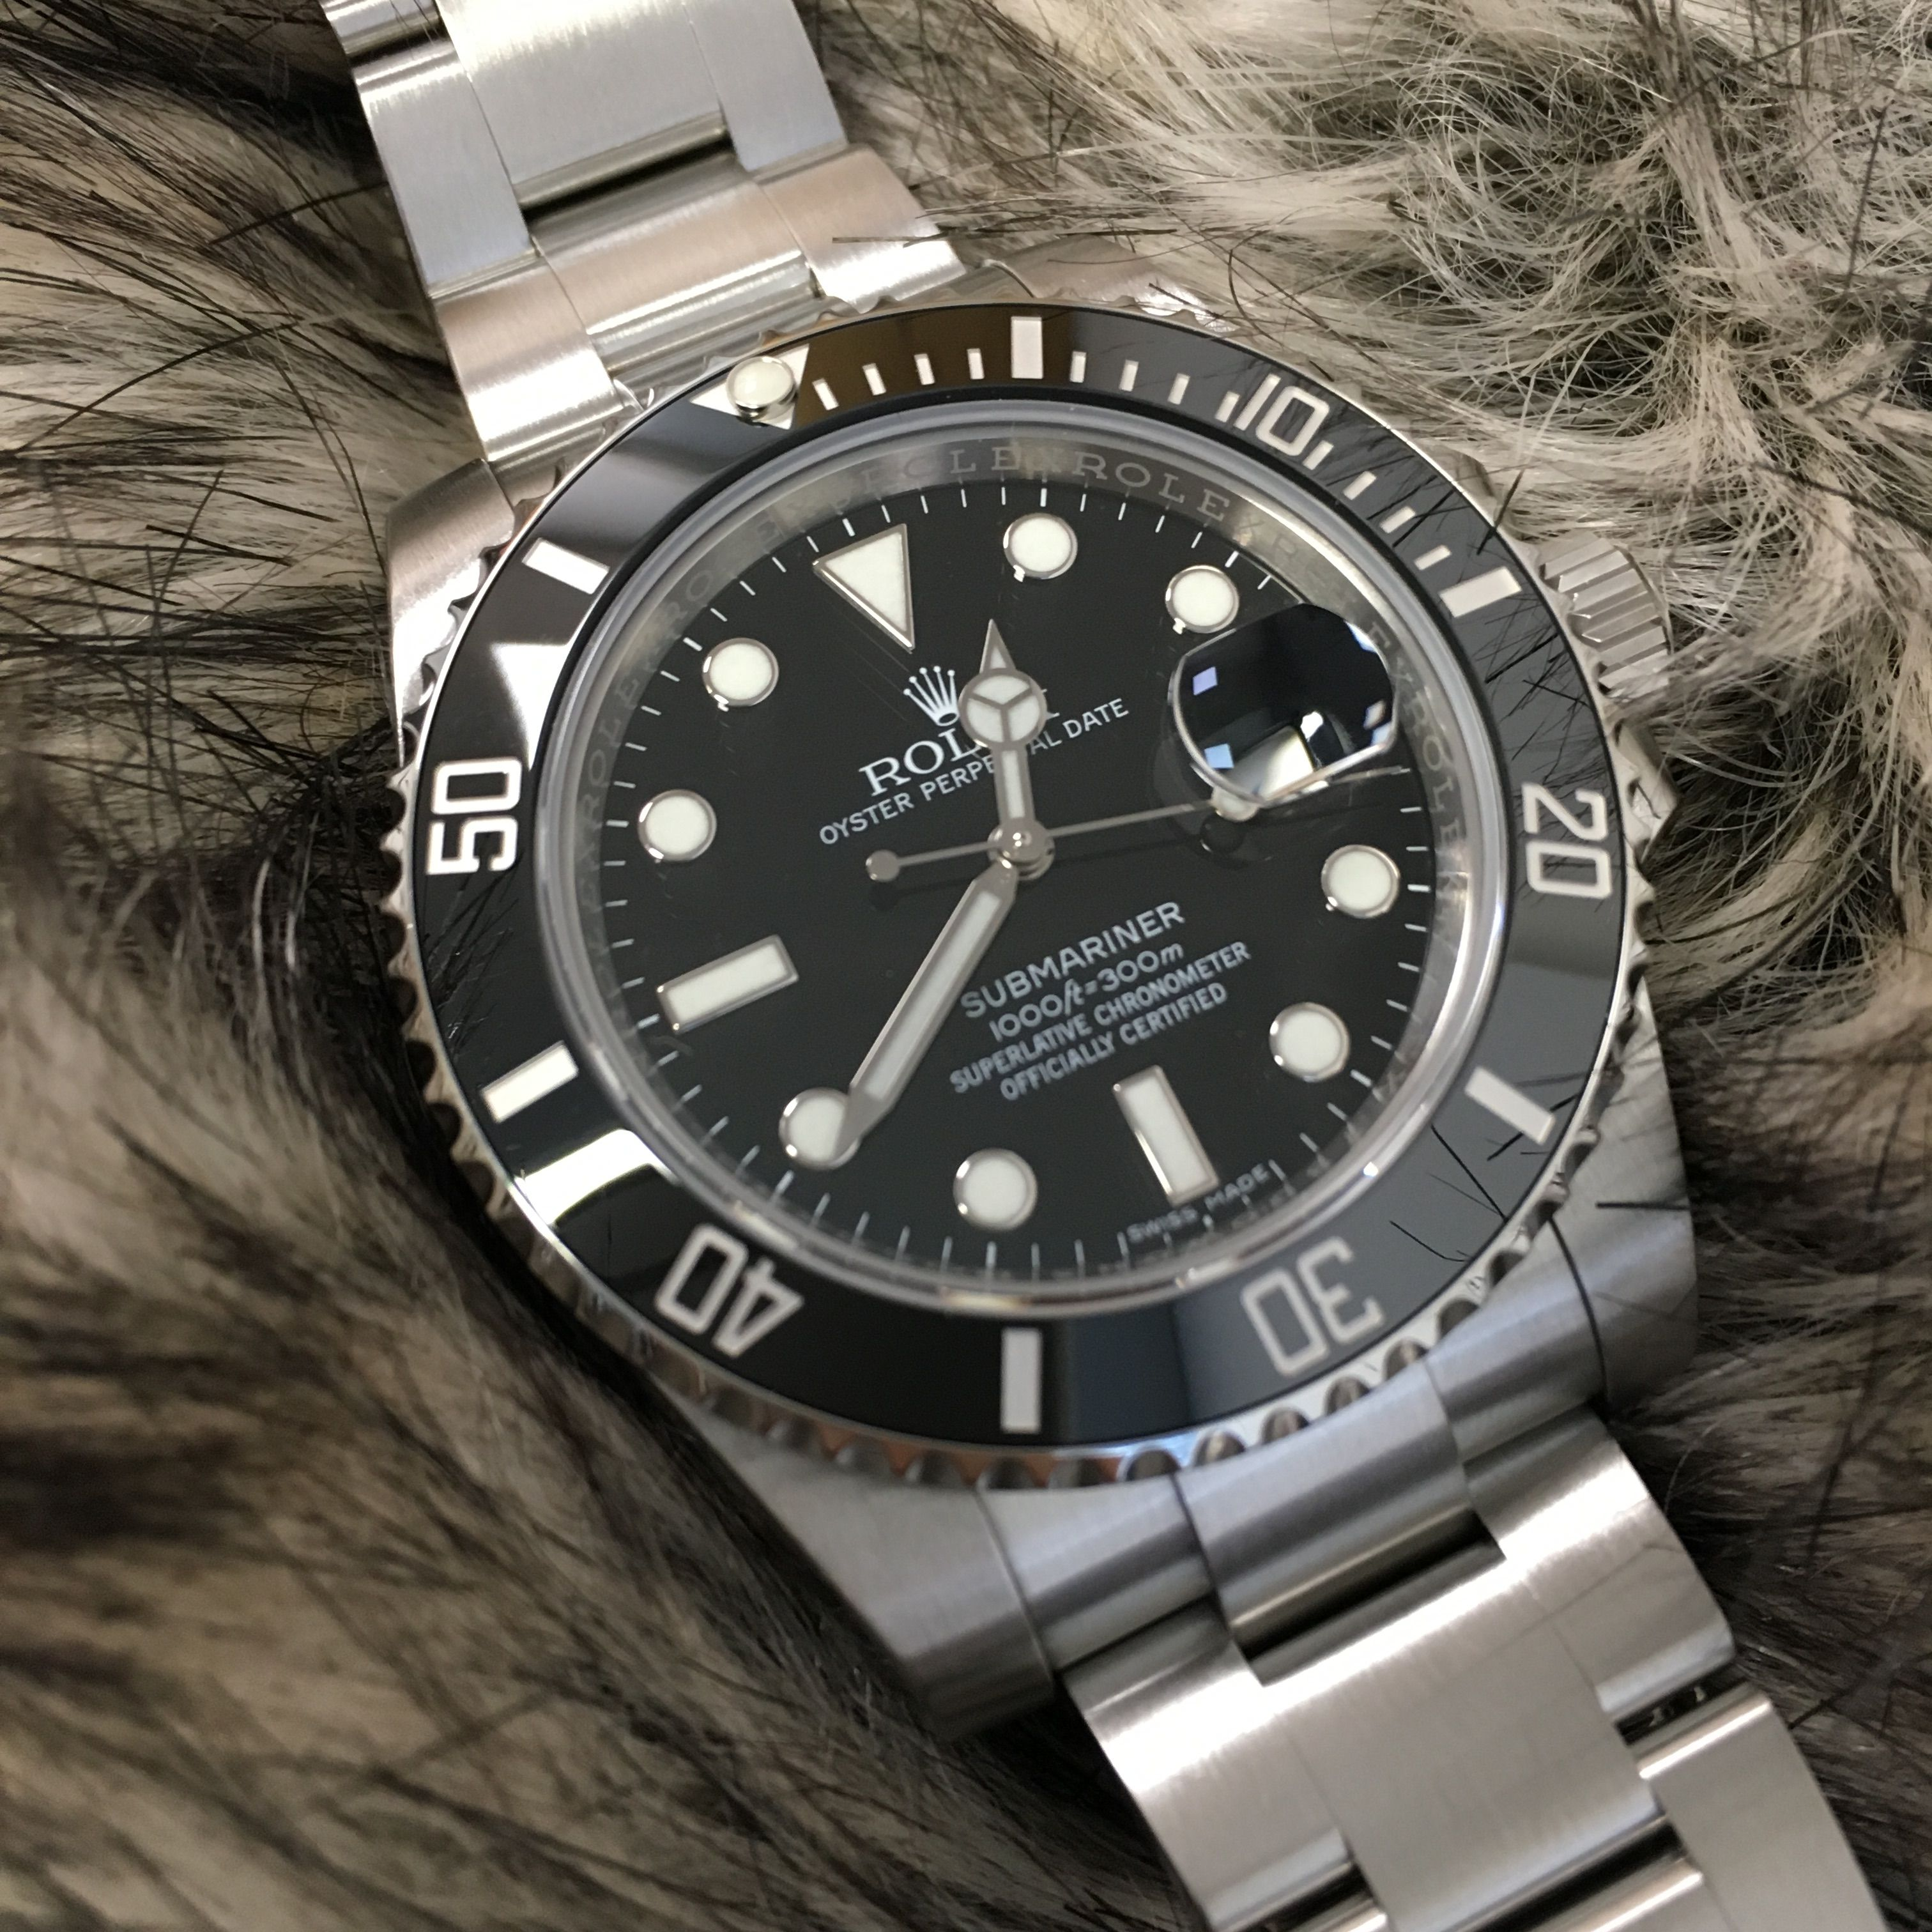 Still Looking For The Rolex Submariner No Waiting List Here Rolex